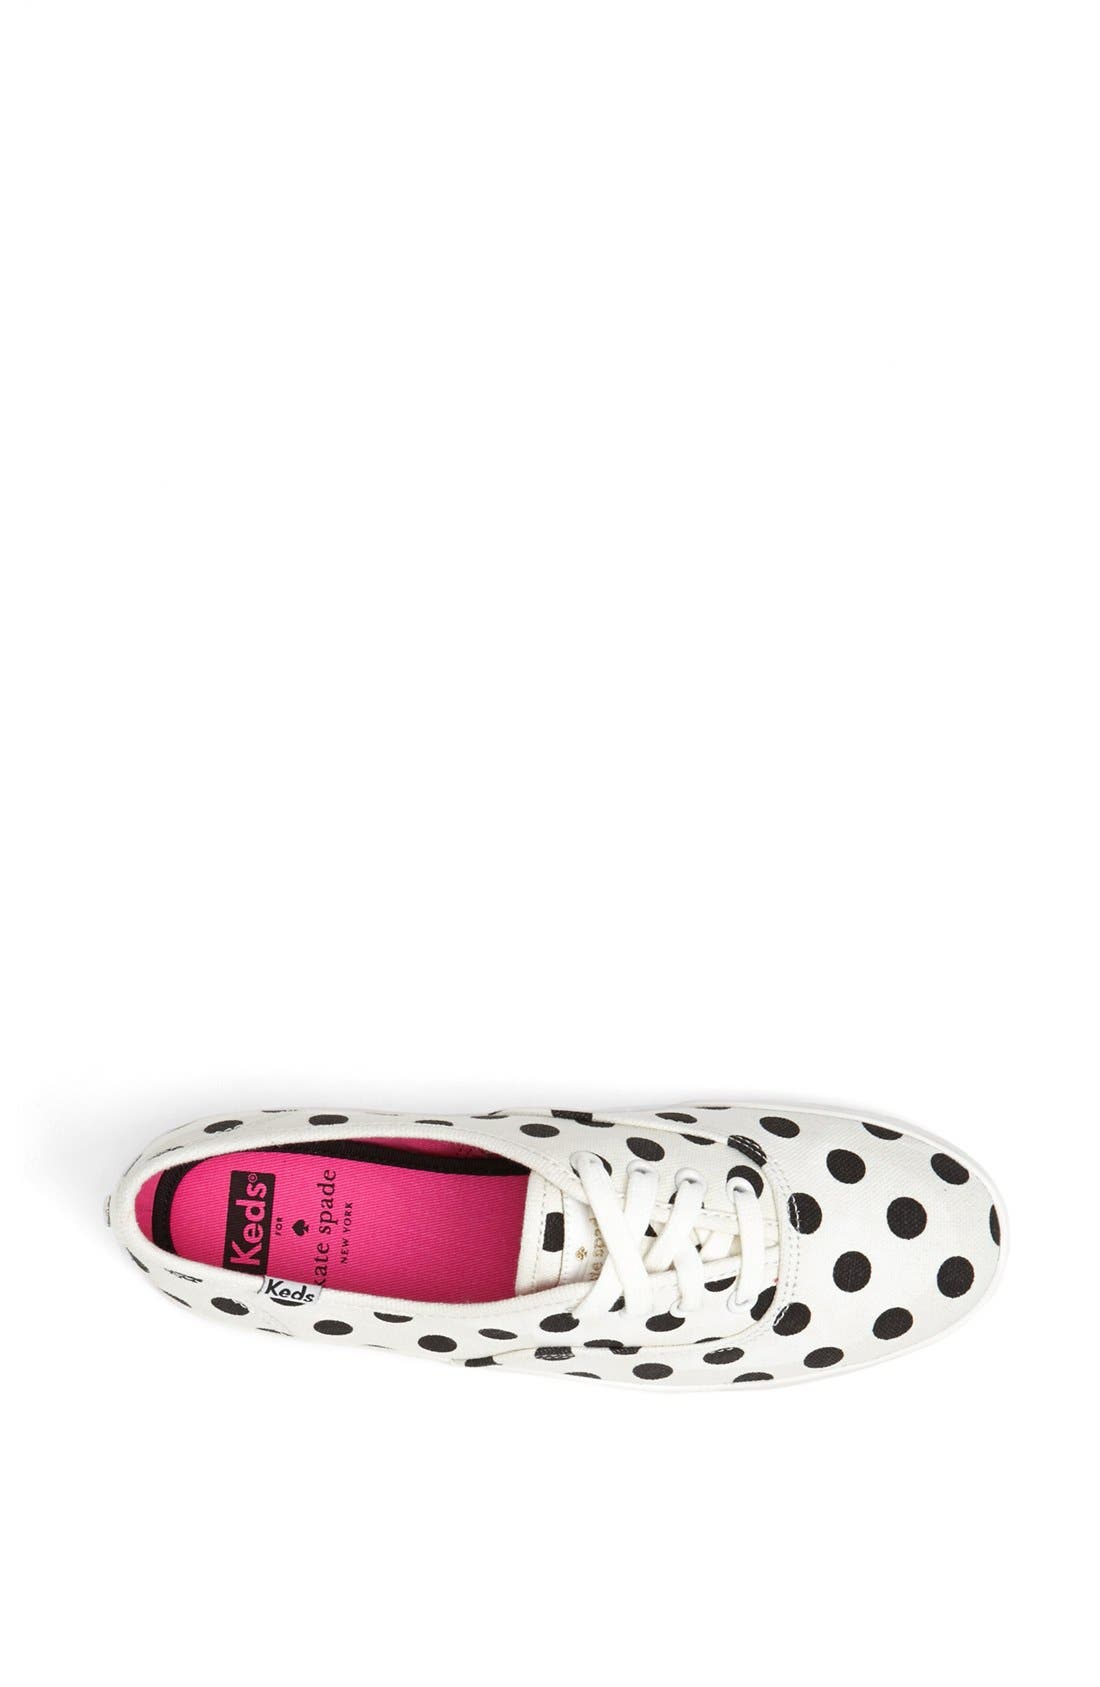 Alternate Image 3  - Keds® for kate spade new york 'kick' sneaker